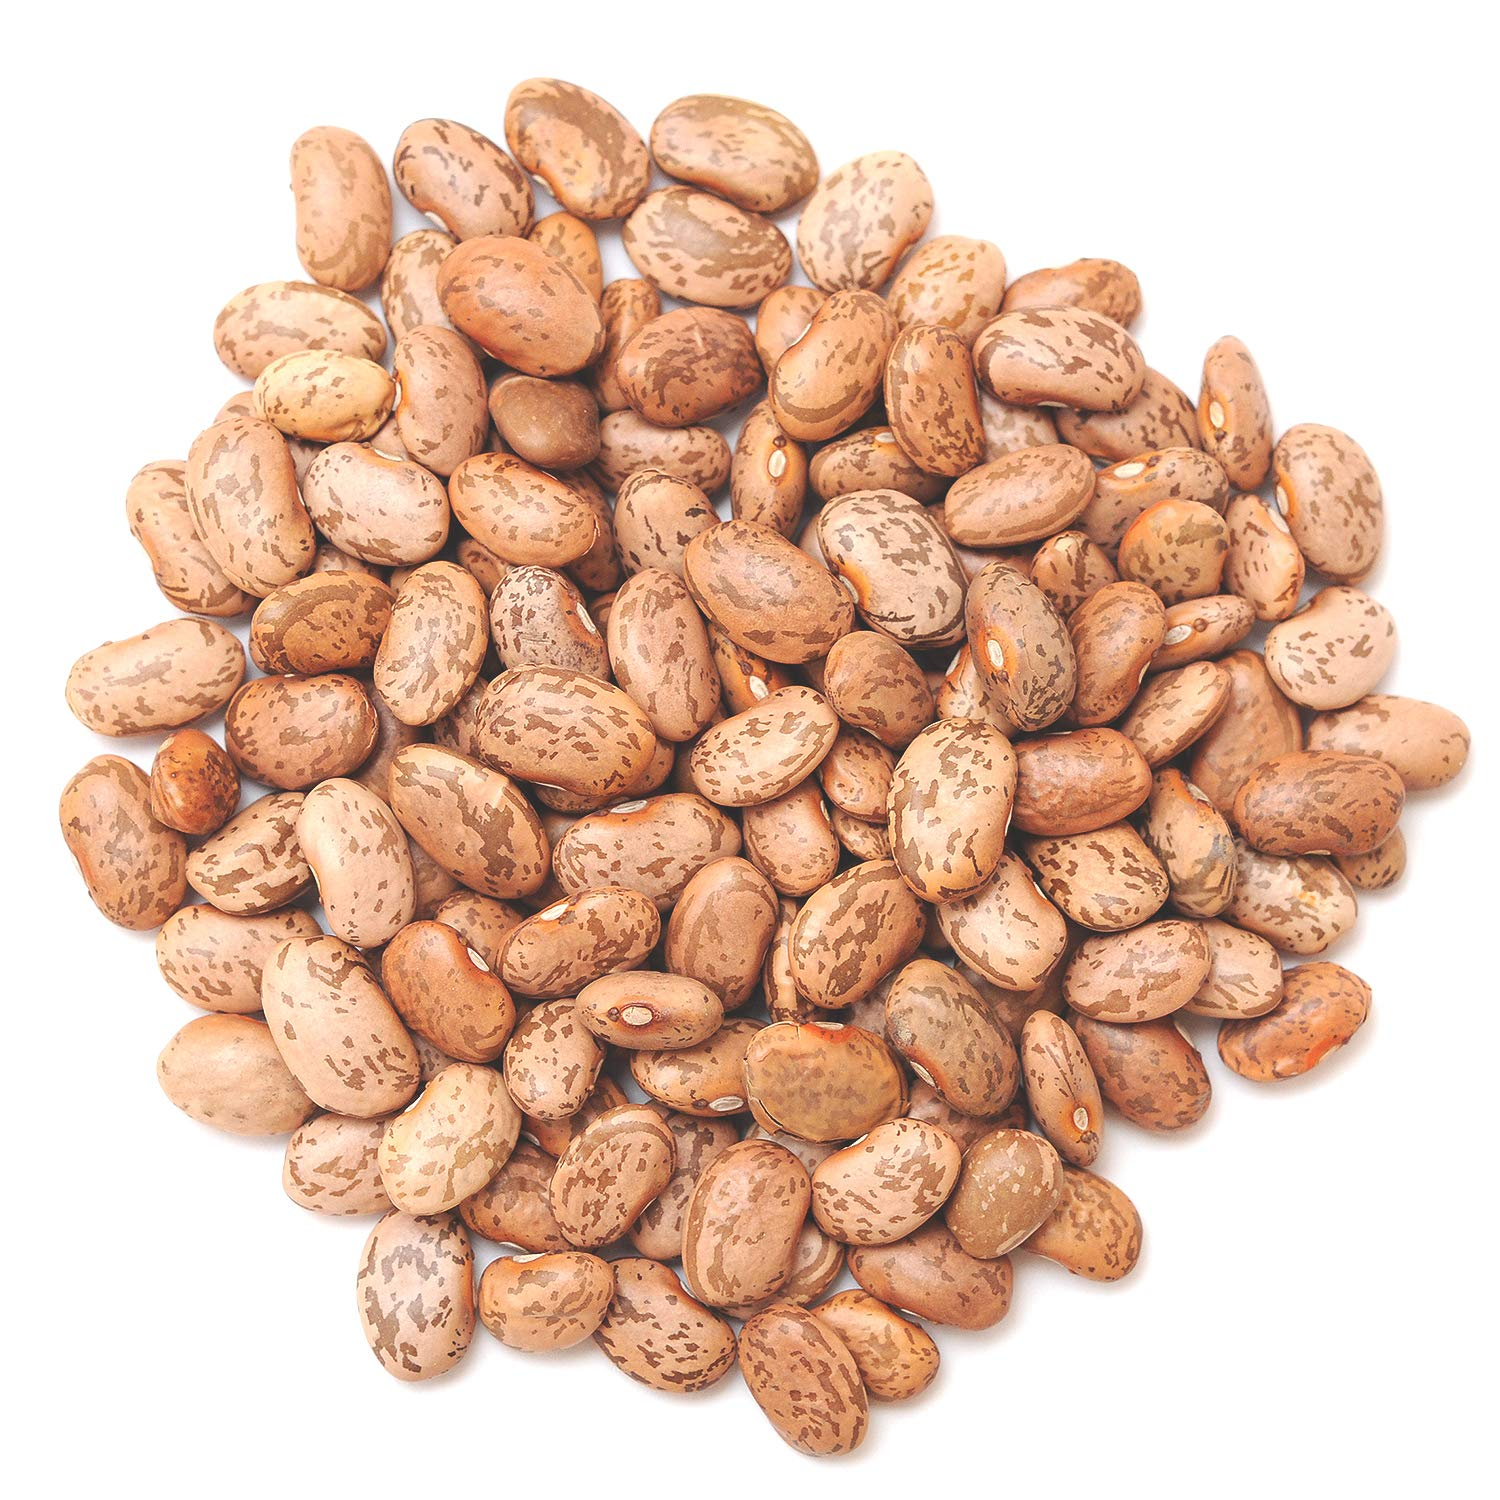 FOTS - Pinto Beans Dry Bulk Pounds 16 U Perfect Max 63% OFF Refried Store